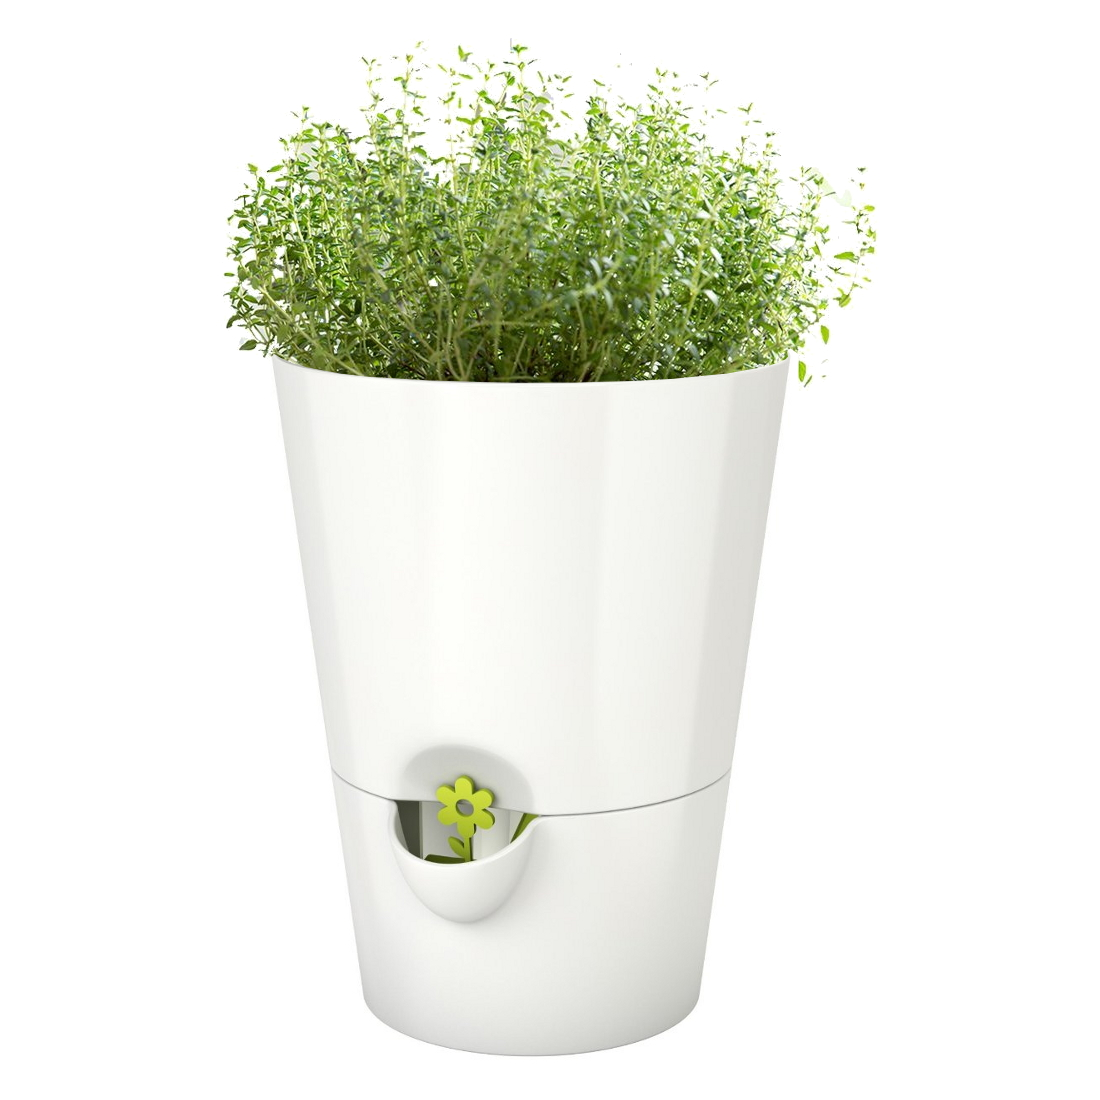 Emsa Smart Planter White 6.5 Inch Herb Grower